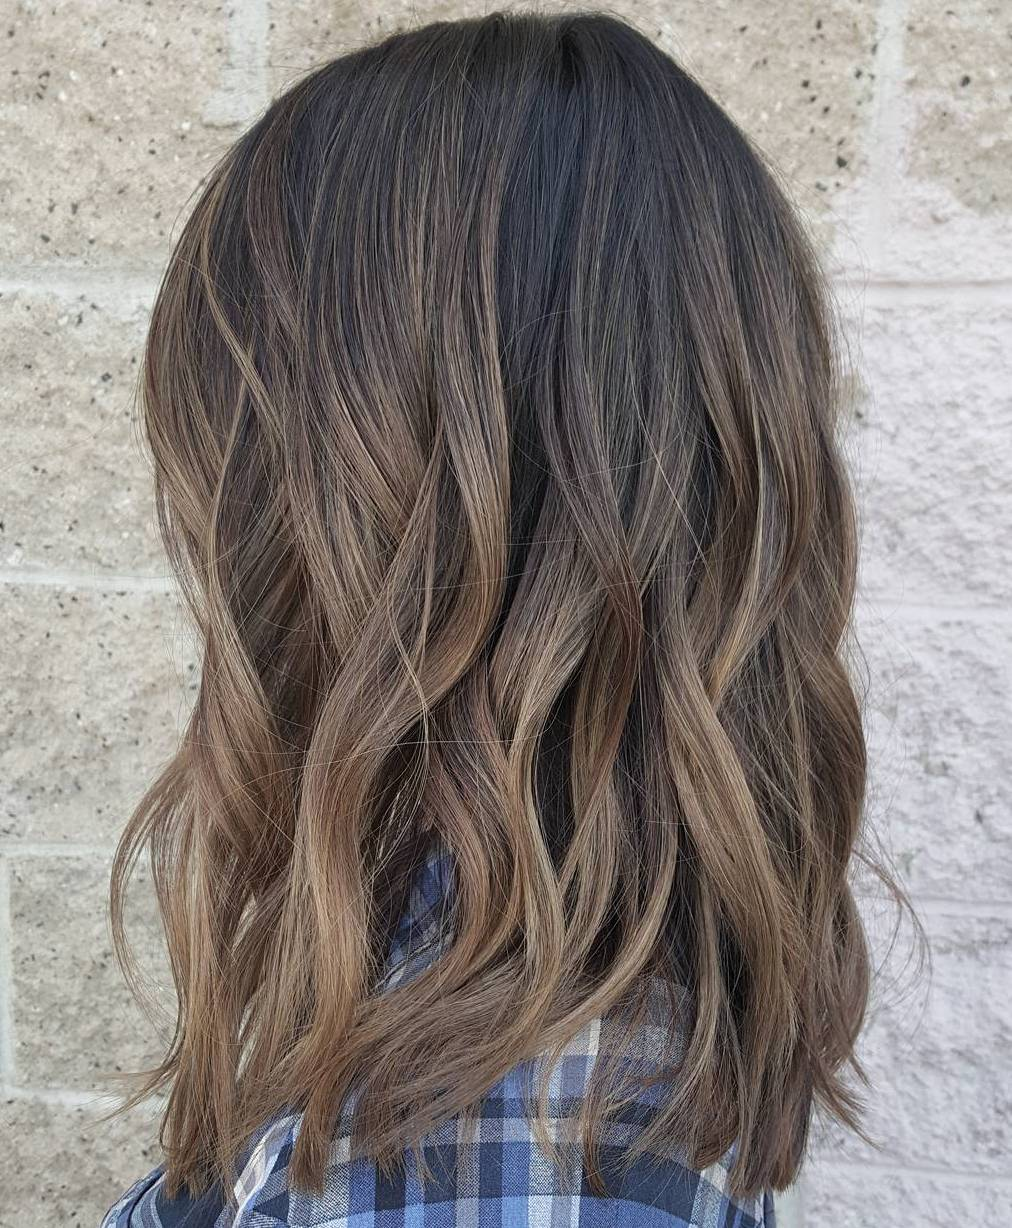 70 Flattering Balayage Hair Color Ideas Balayage